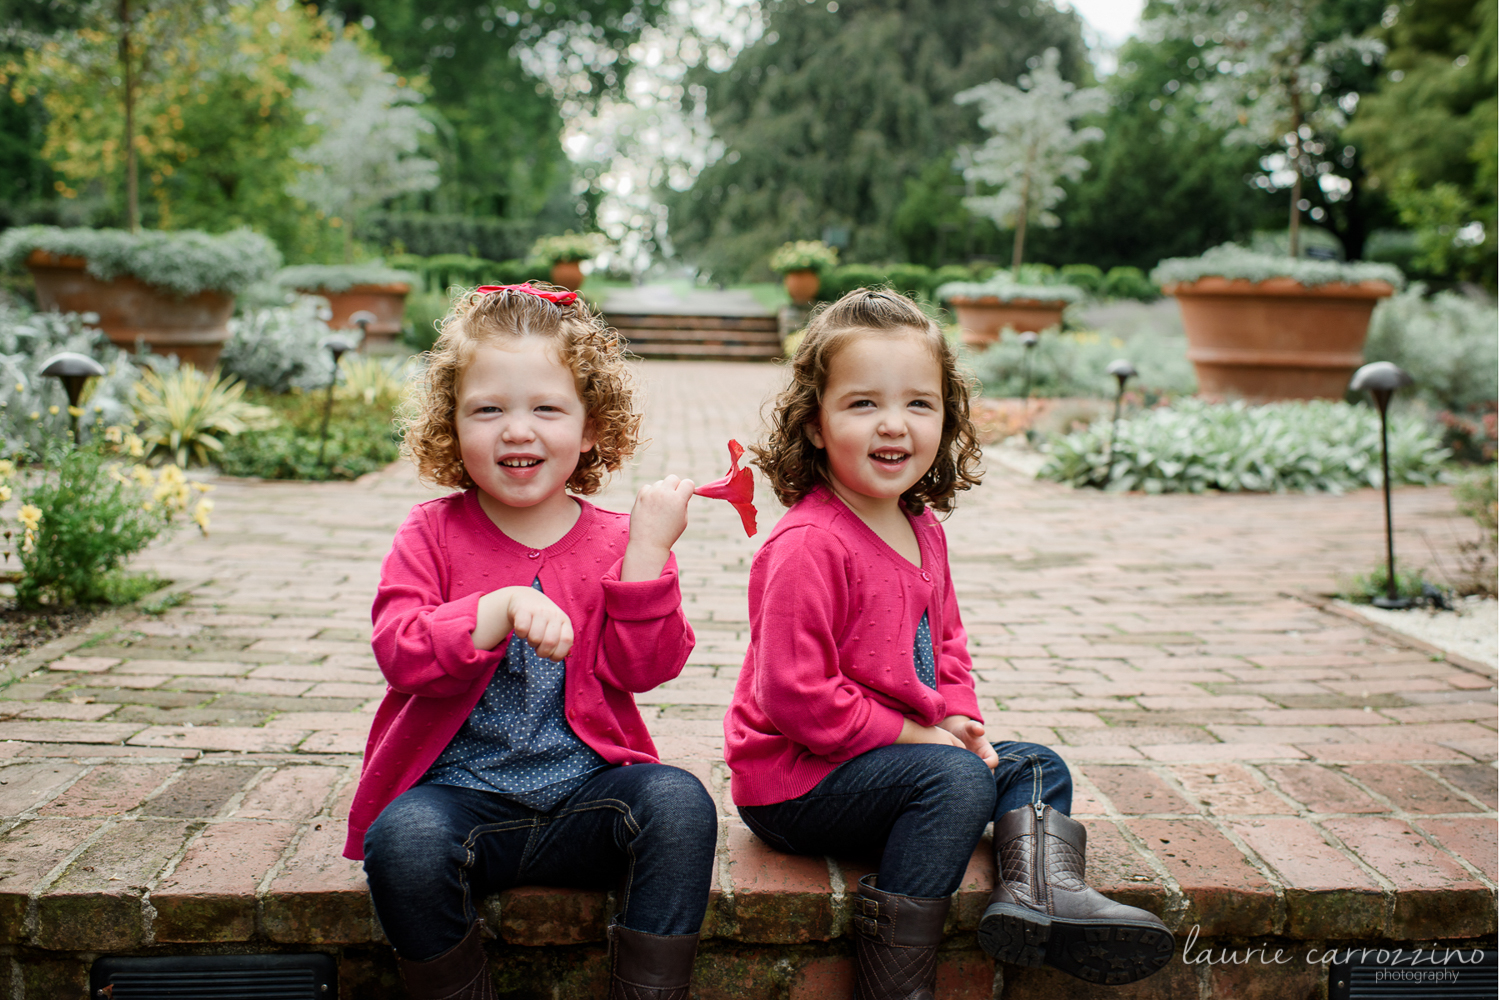 longwoodfamilysession04-2.jpg